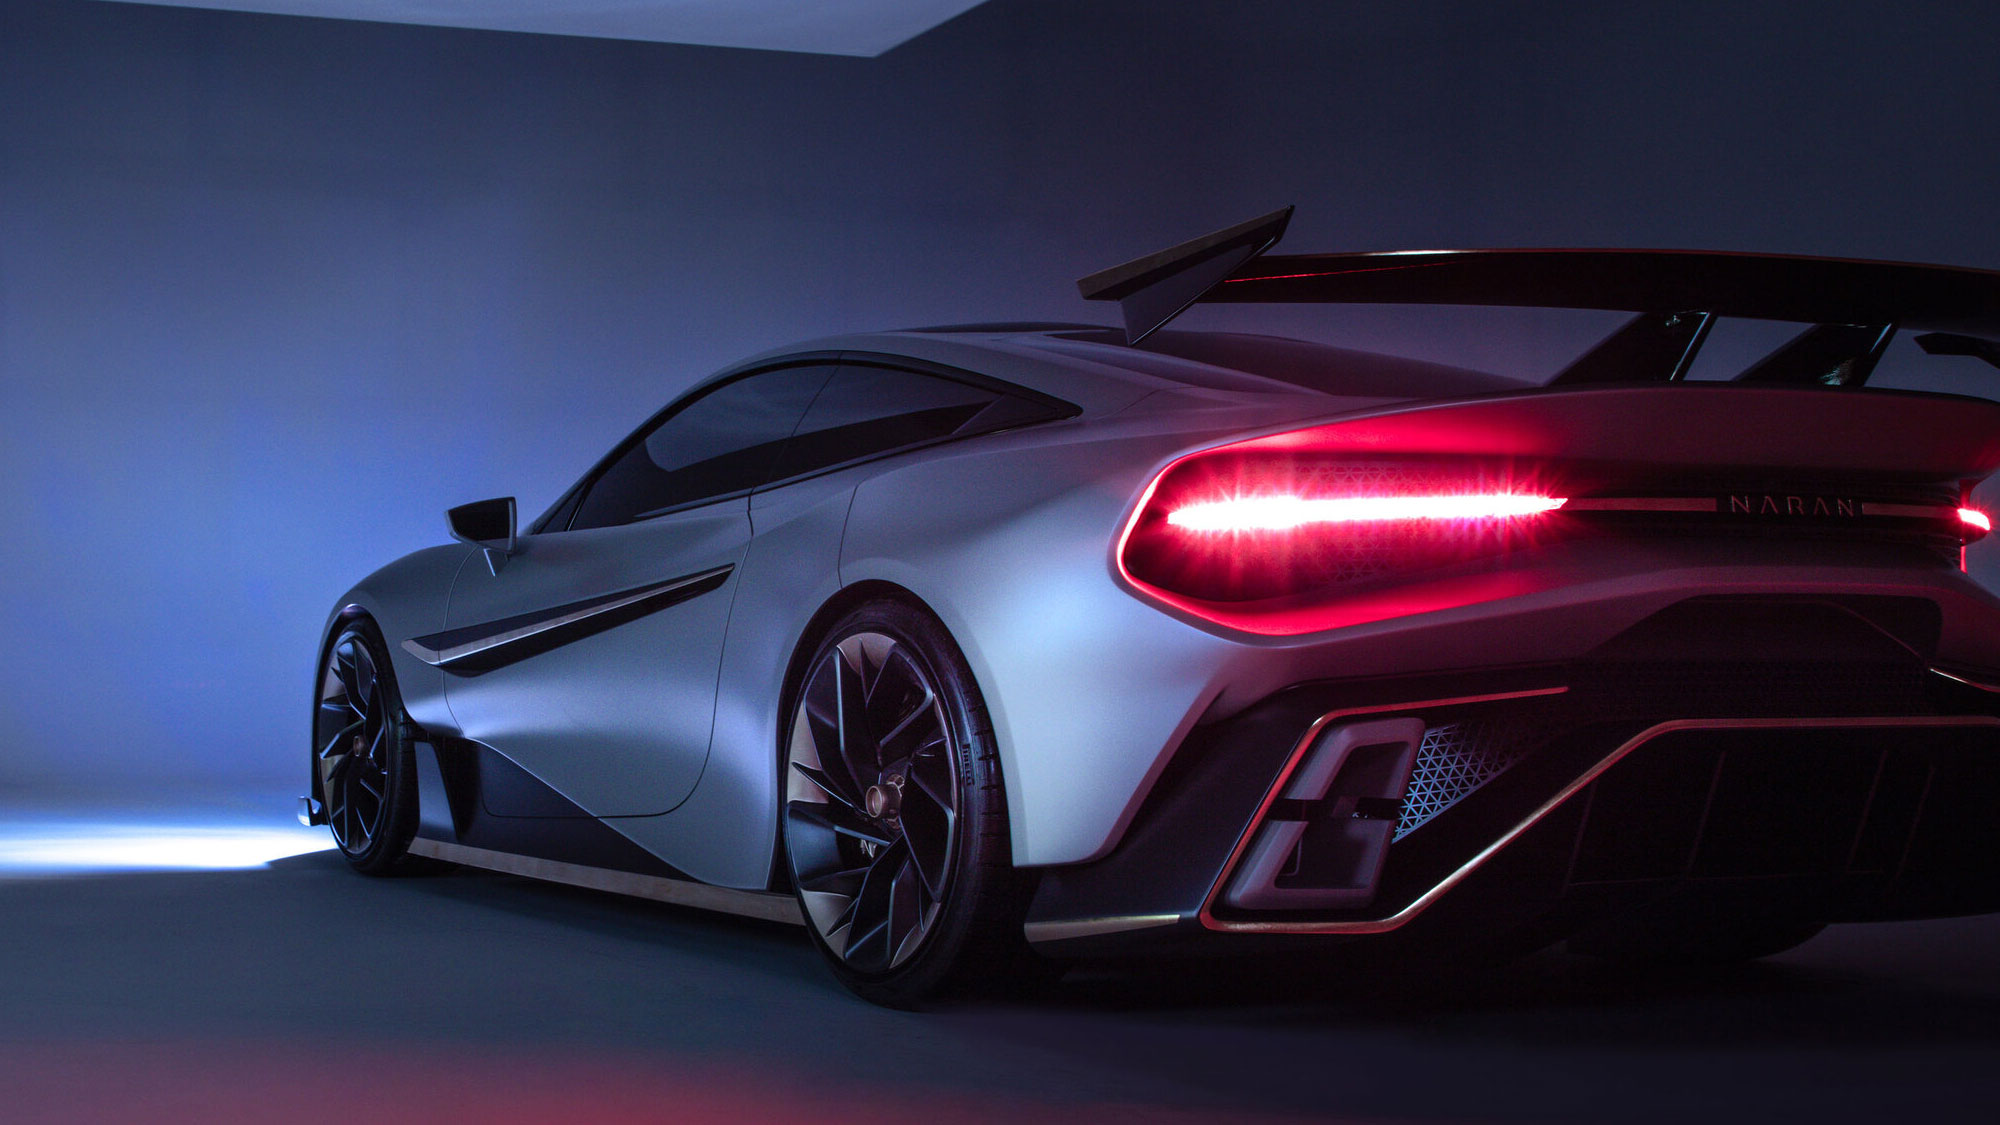 The Naran GT3-inspired 2+2 Hyper-coupe